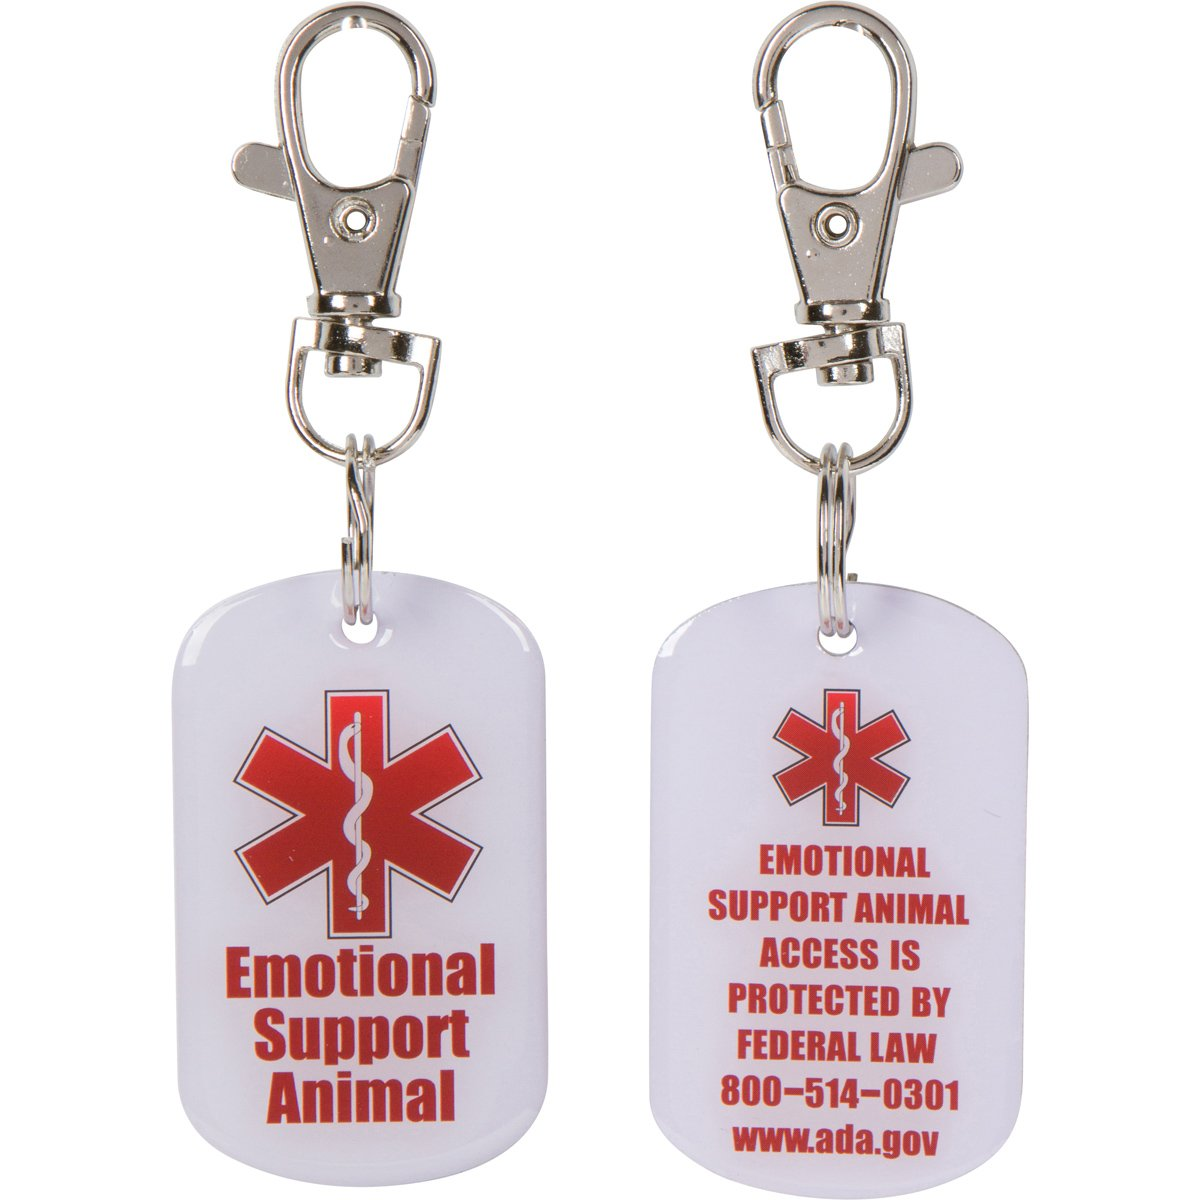 2 DOUBLE SIDED Emotional Support Animal (ESA) with Red Medical Alert Symbol 1.25 inch Durable ID Tag. QUICK RELEASE metal lobster clamp allowing you to switch between collars and vest.